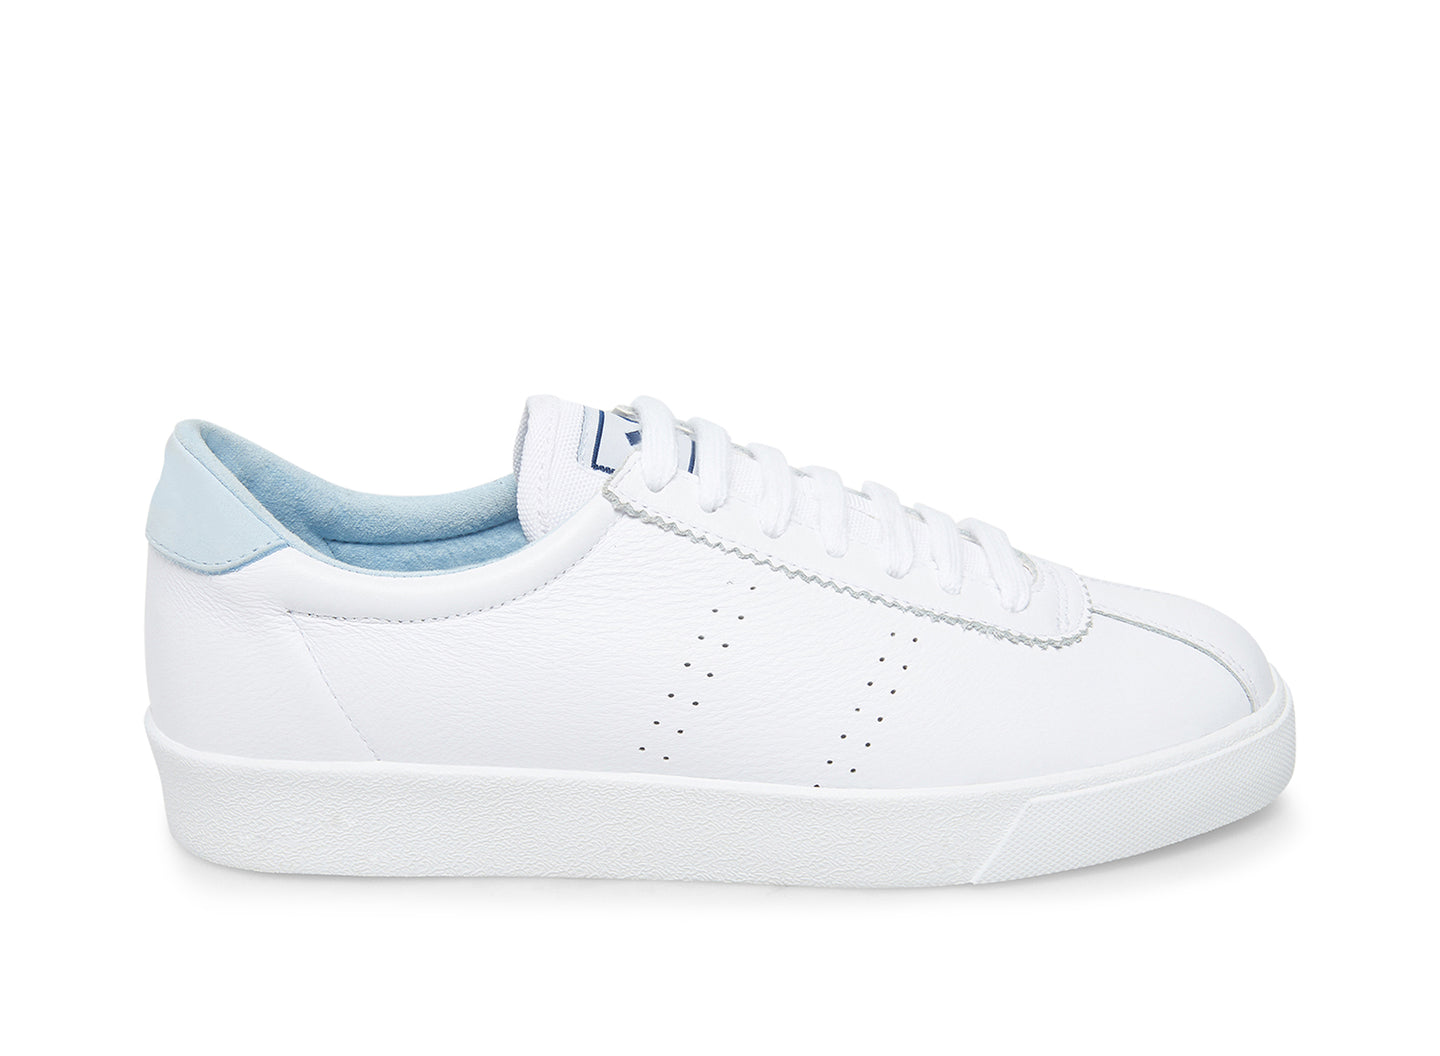 2843 COMFLEAU WHITE BABY BLUE - Women's